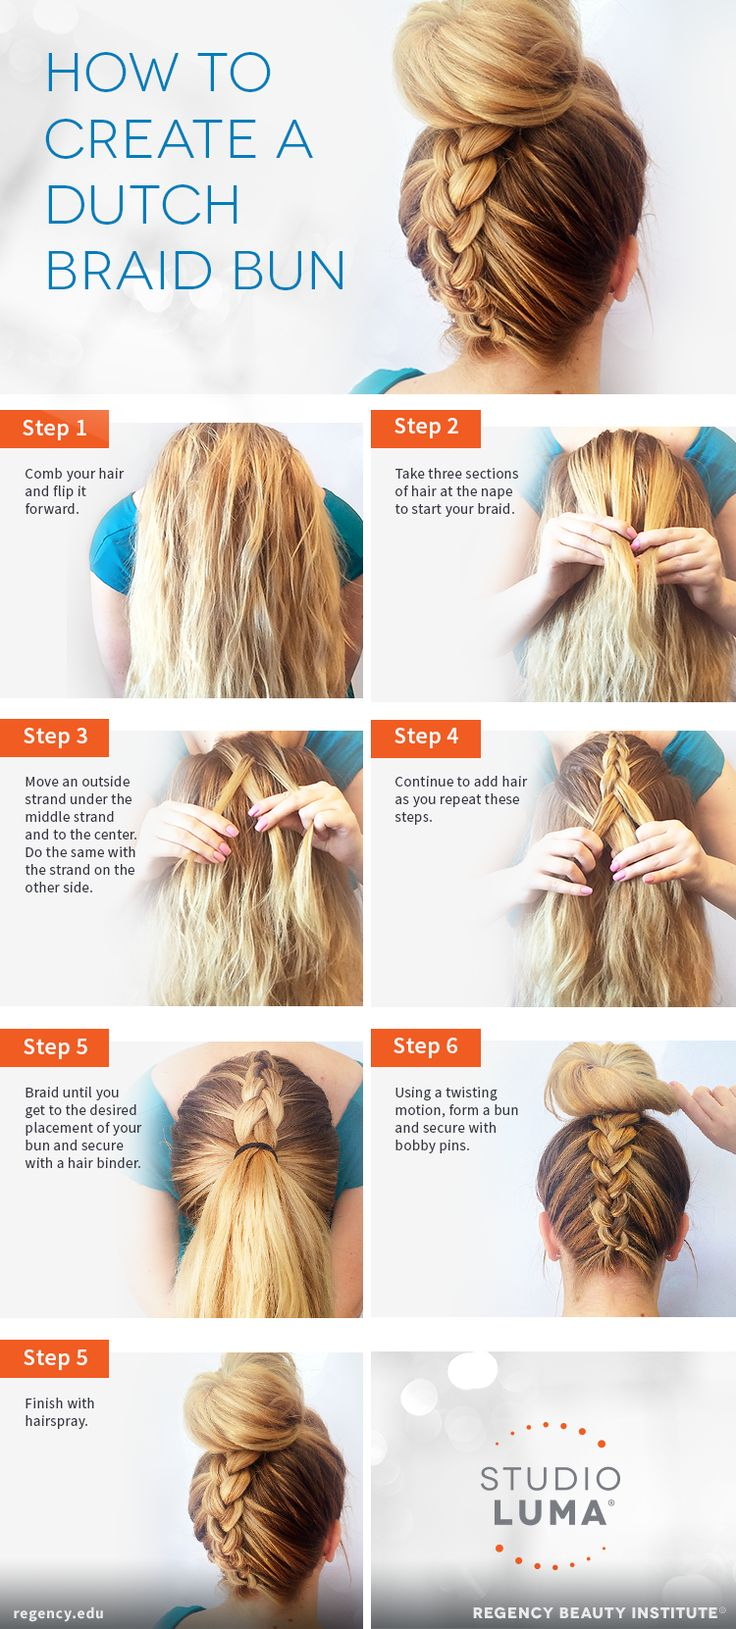 French braids are classic, but we're always up for new takes on the style. Like this dutch braid bu